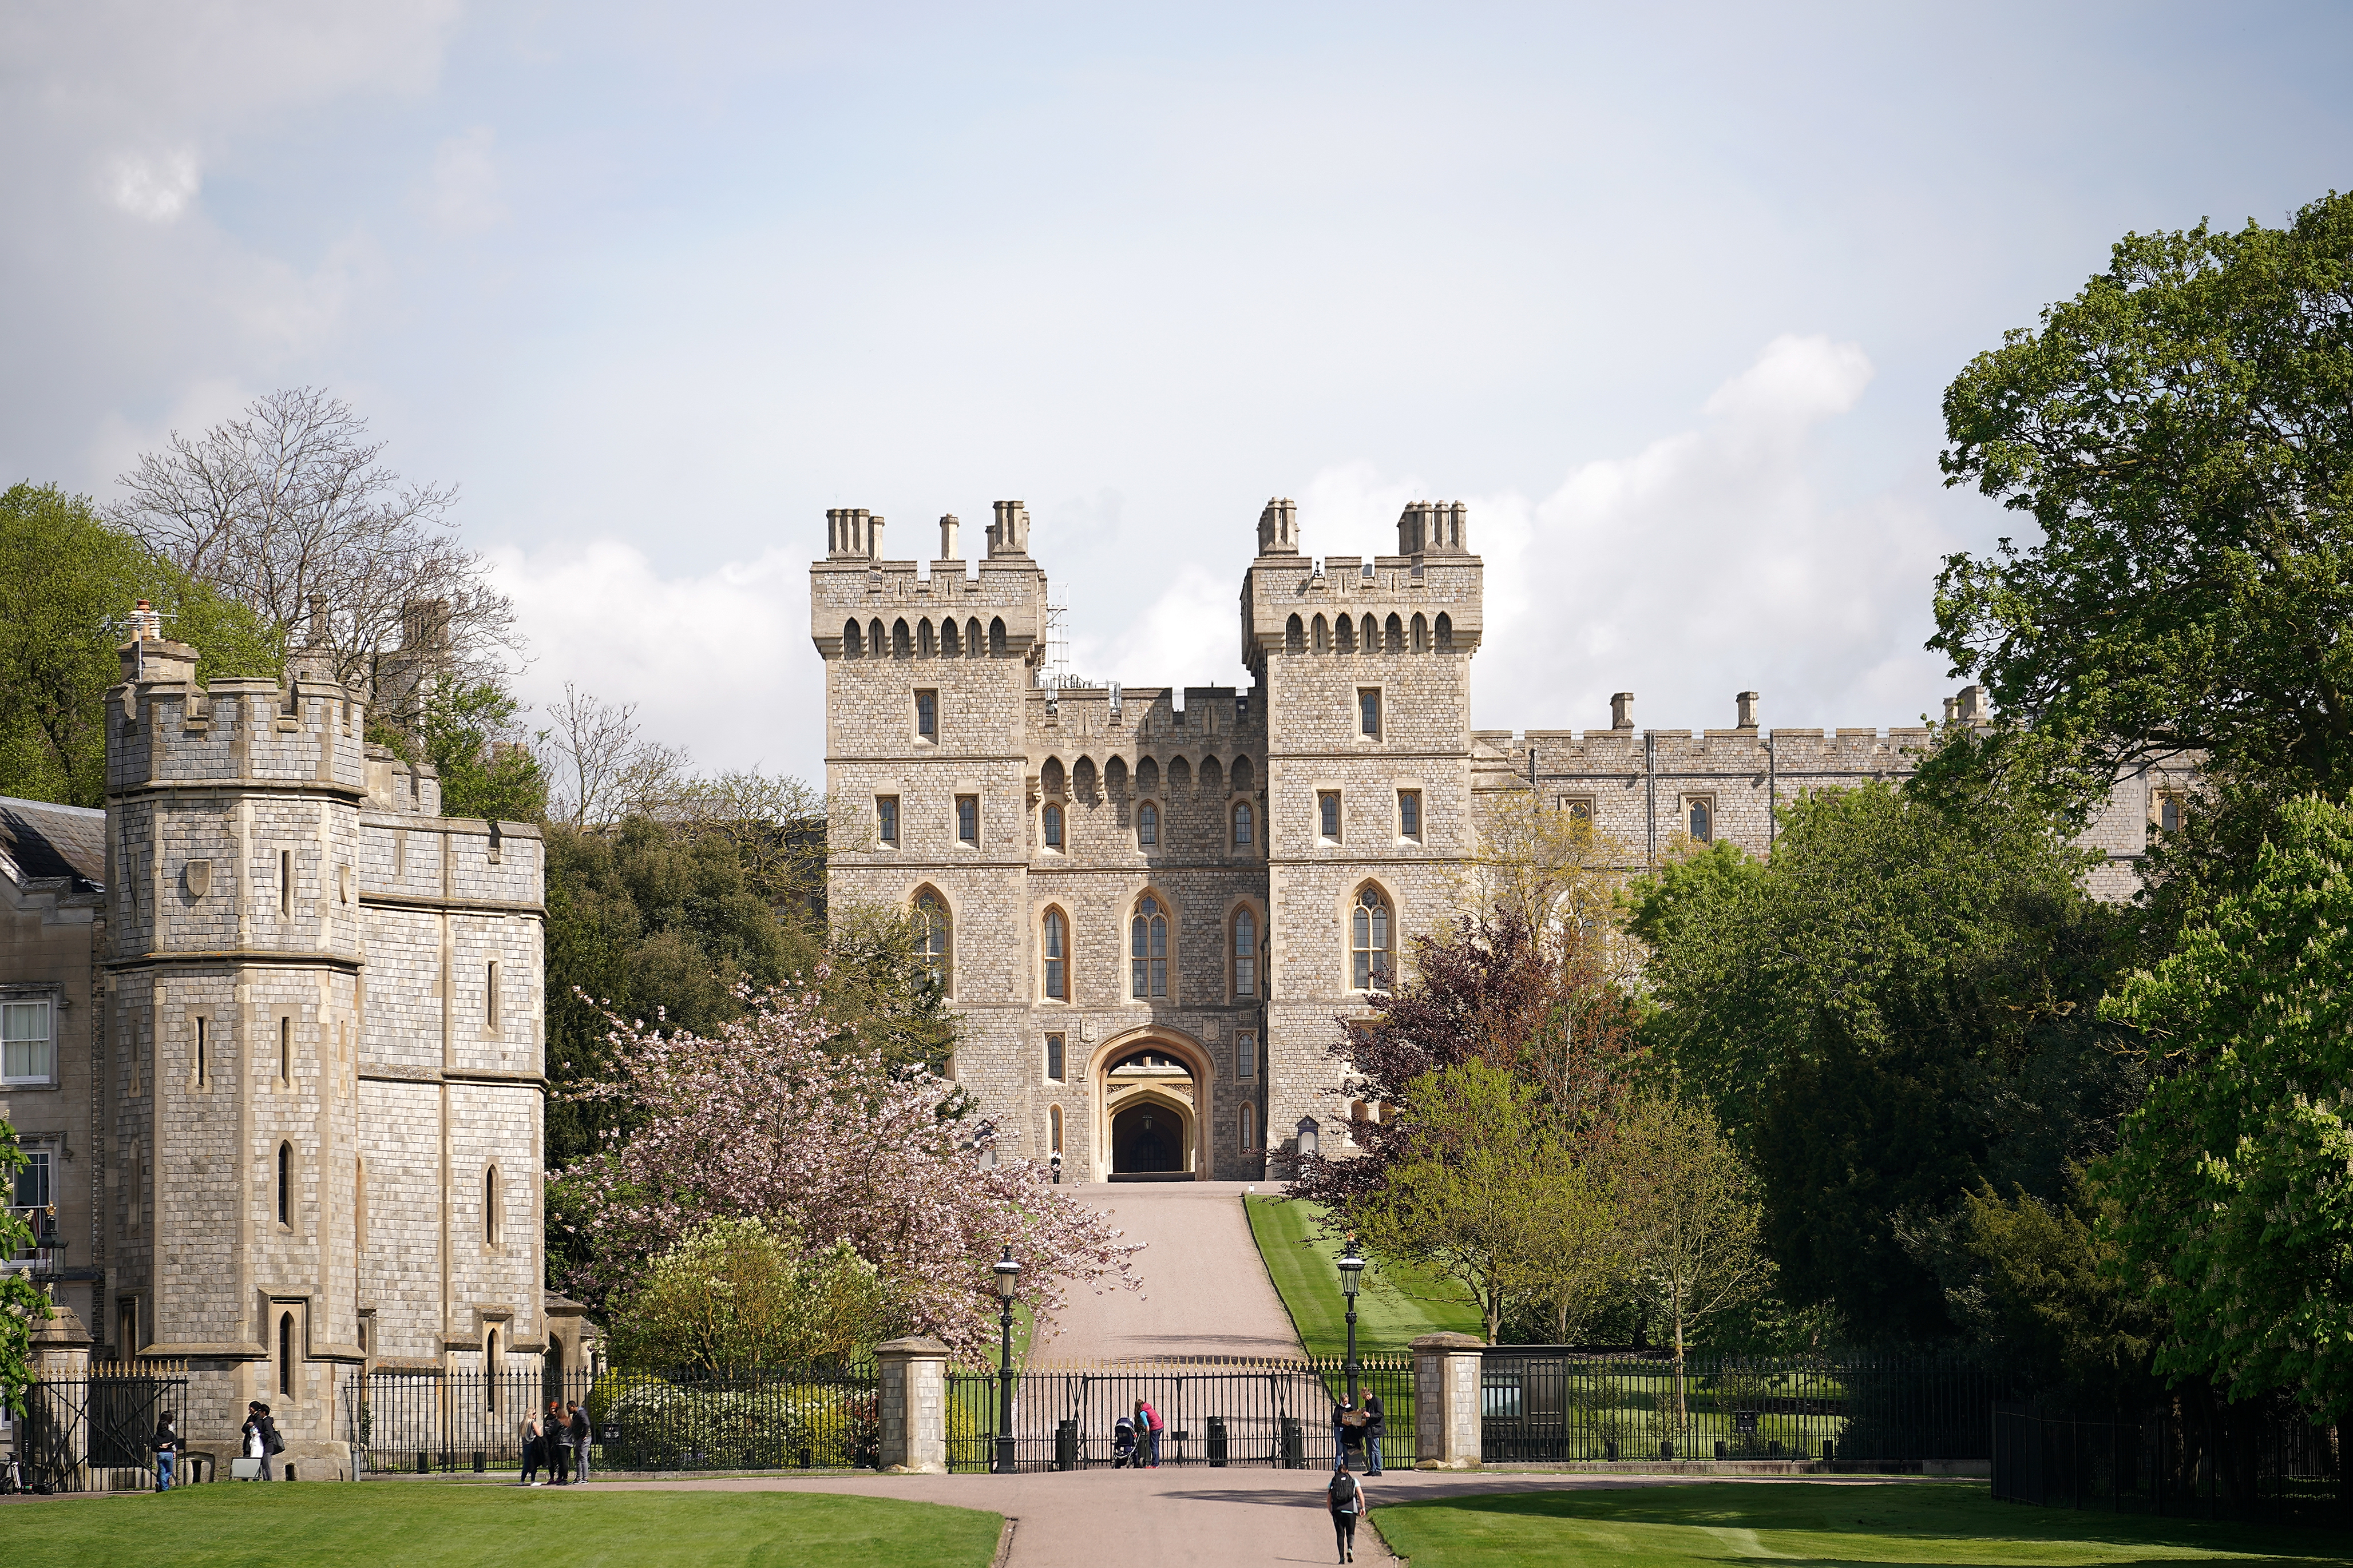 Security-For-Royal-Wedding-Will-Include-Observation-Towers-For-Sniper-Surveillance